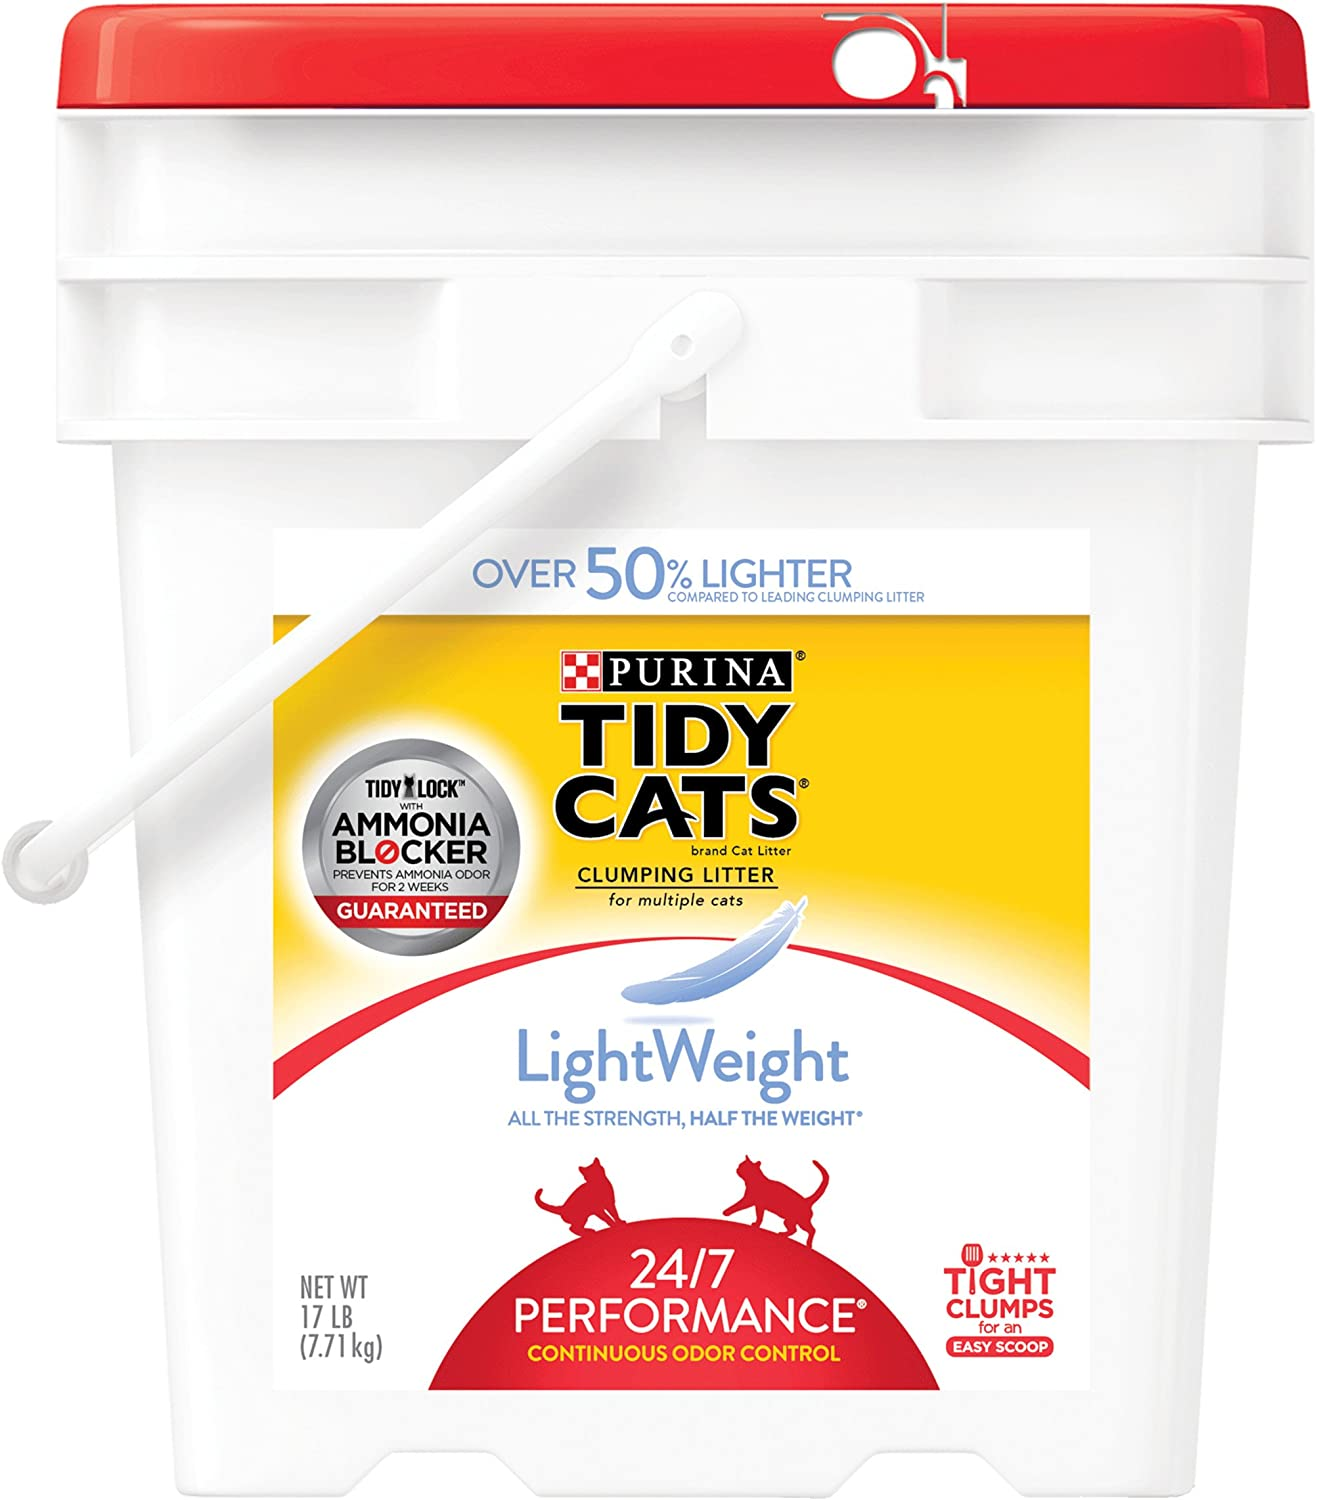 Purina Tidy Cats LightWeight 24 7 Performance Clumping Litter for Multiple Cats  (1) 17 lb. Pail